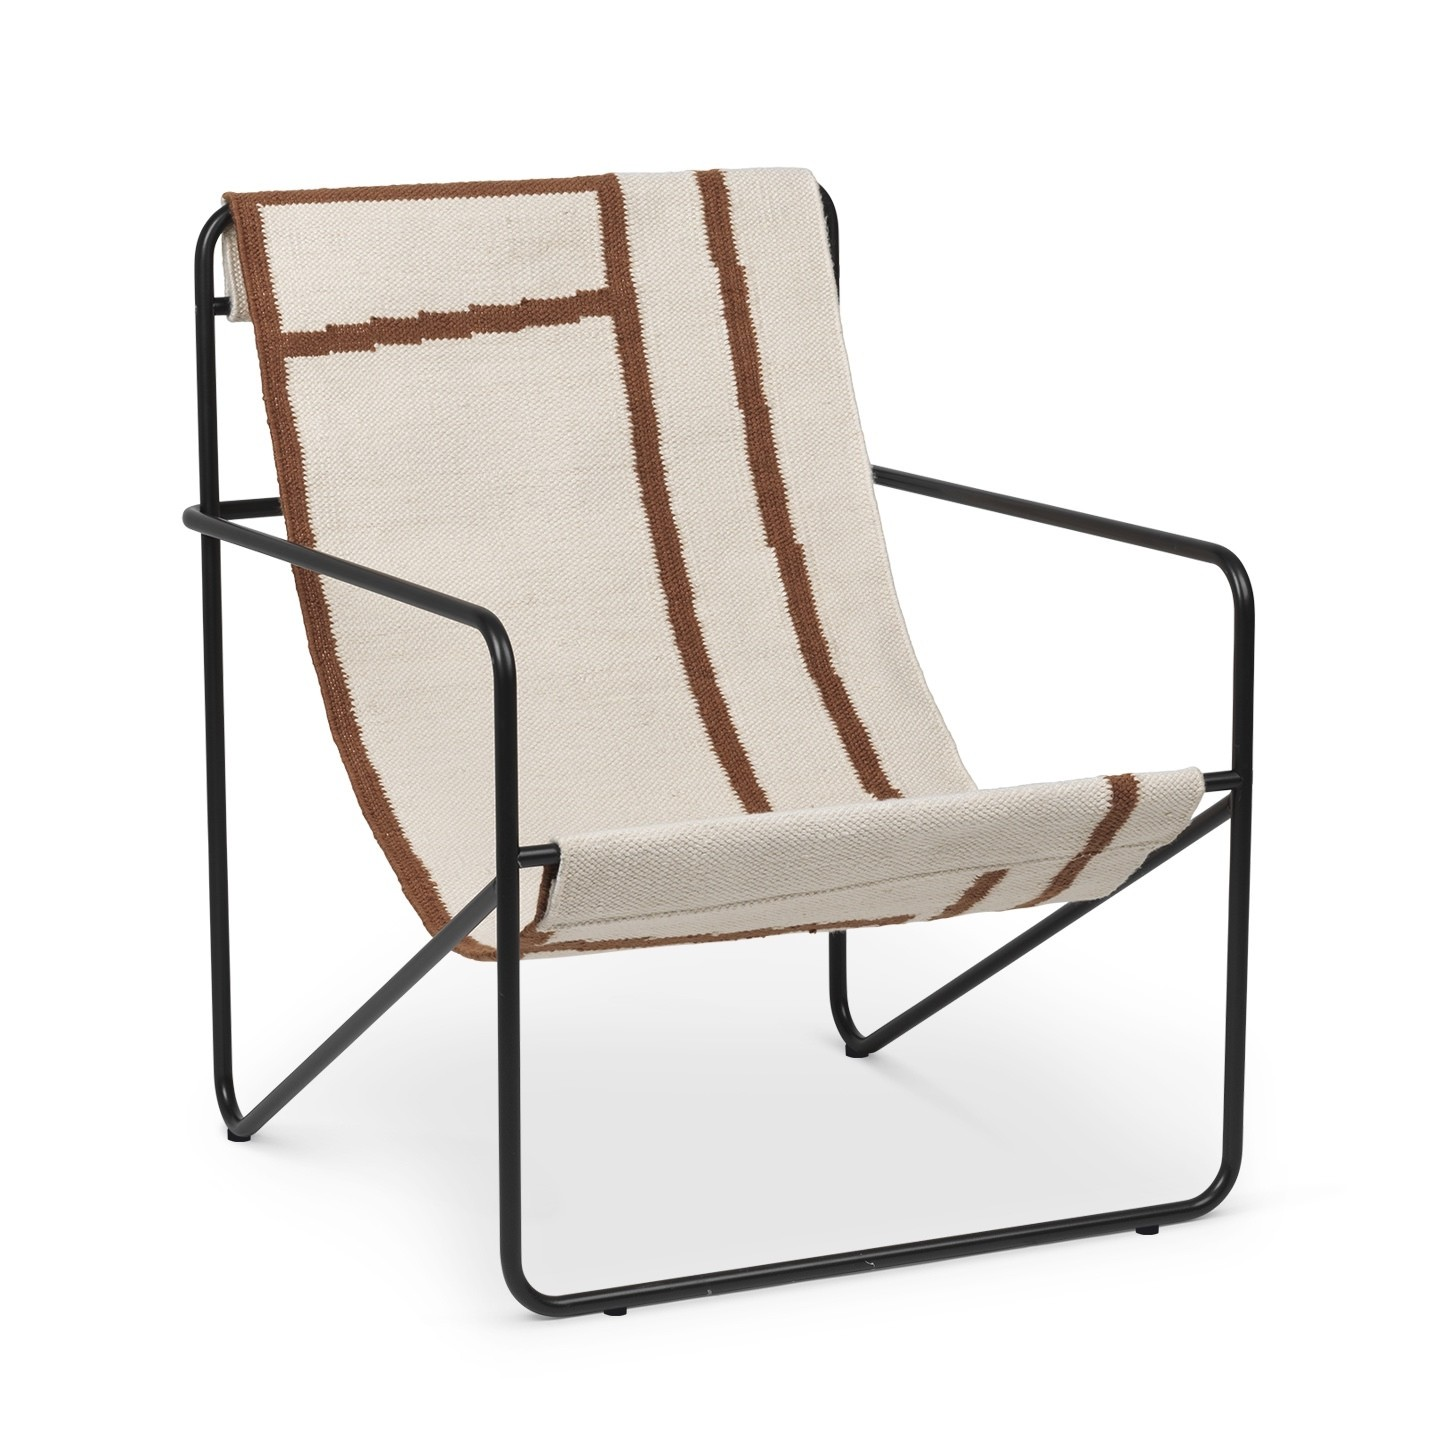 Ferm Living Desert Chair-Black / Shape